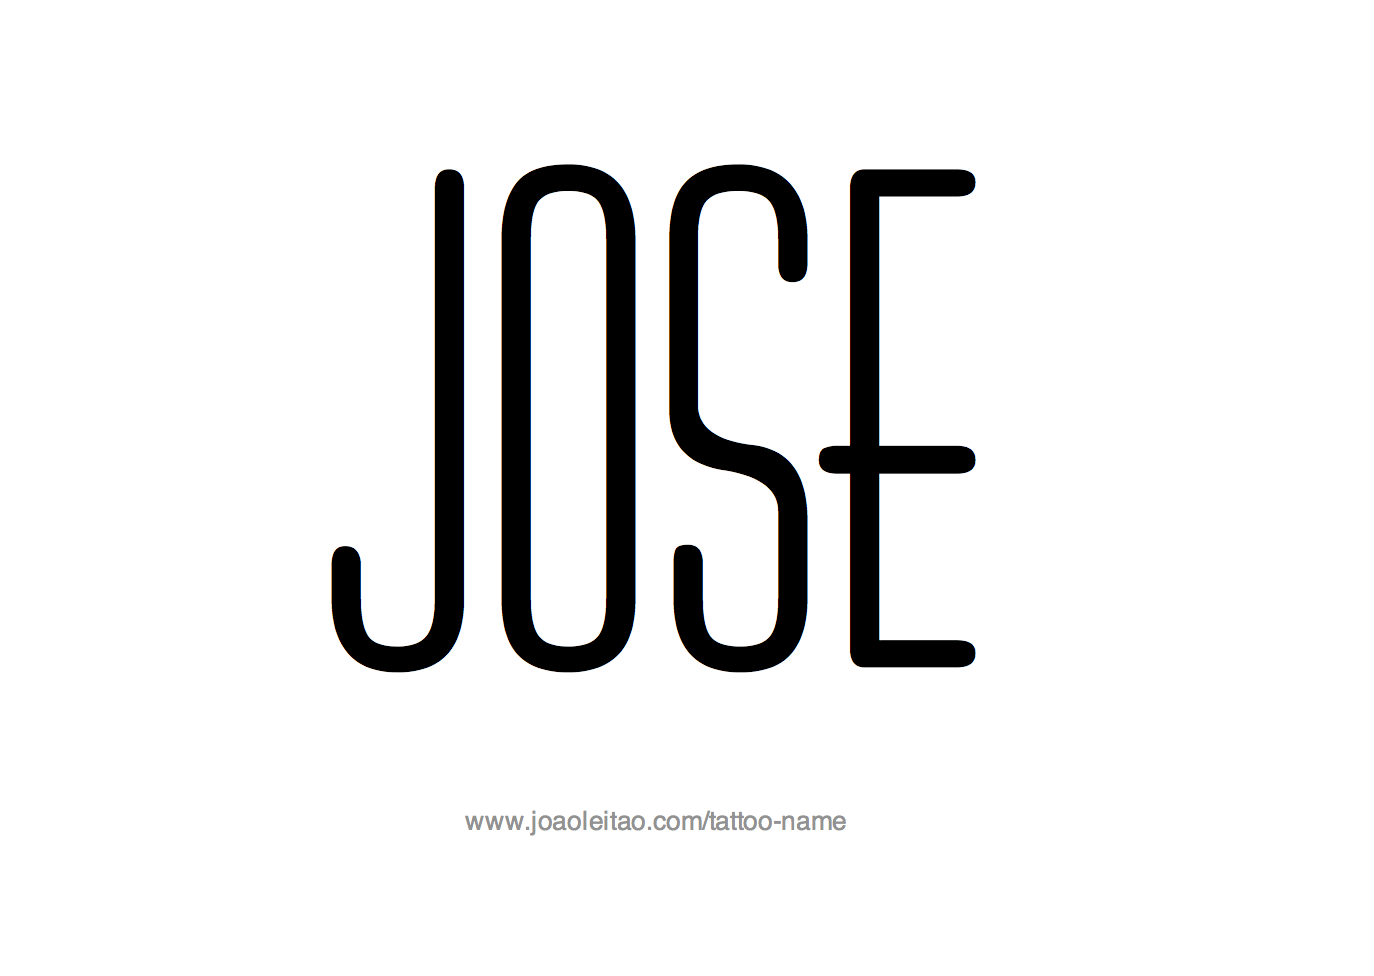 Jose Name Tattoo Designs.